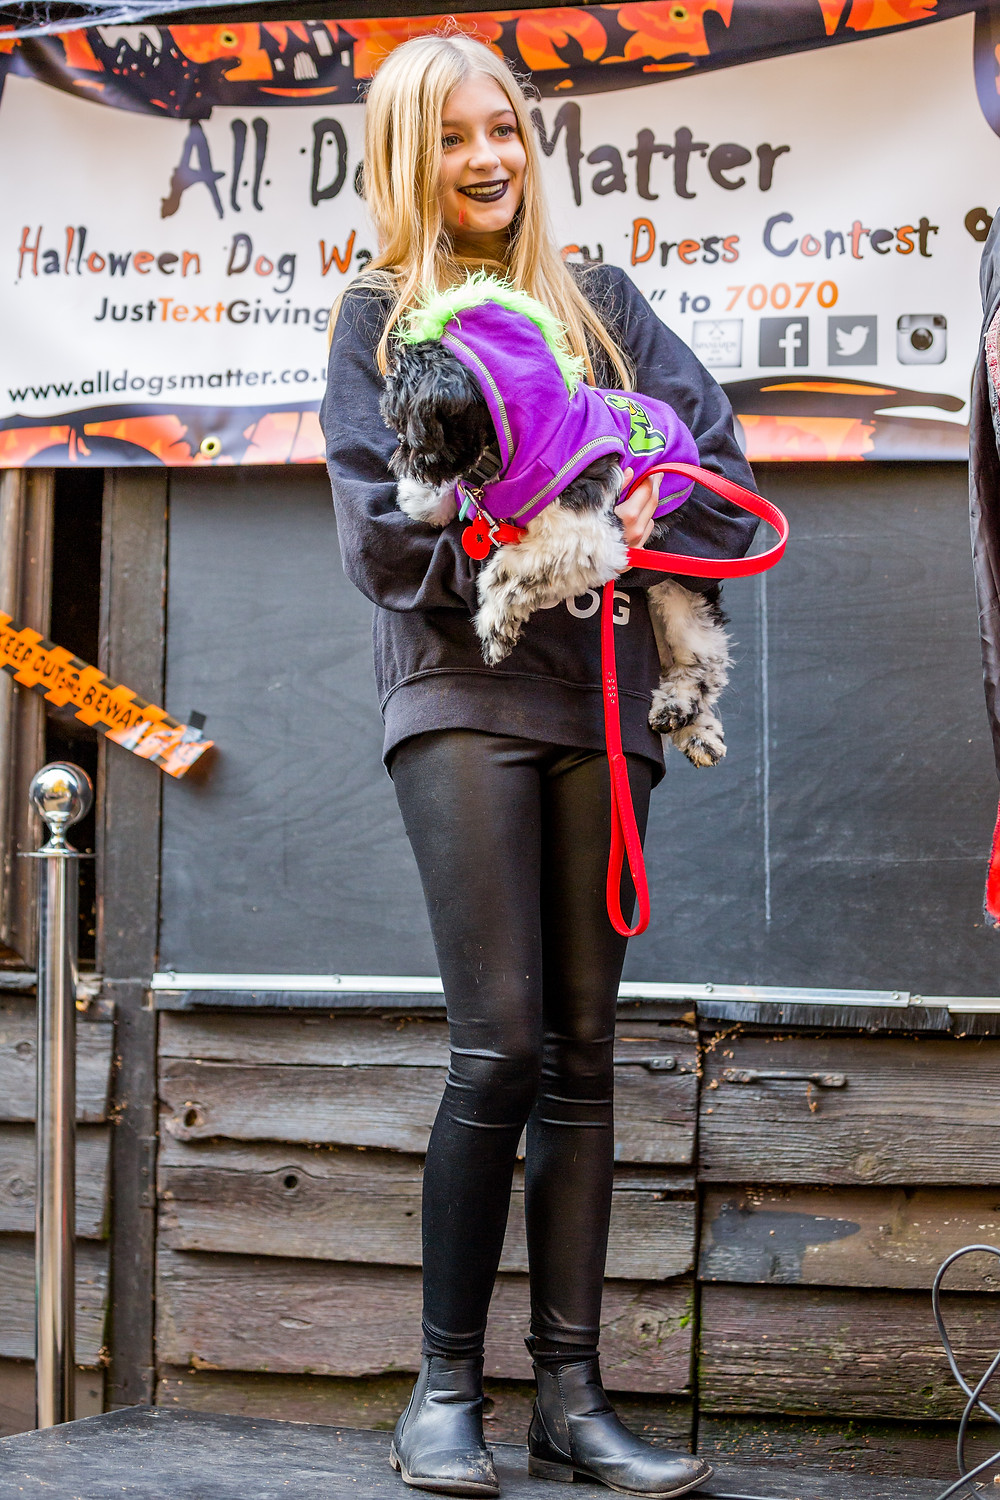 Dog photography in London. All Dogs Matter Halloween Charity Event. Volunteer and dog in fancy dress